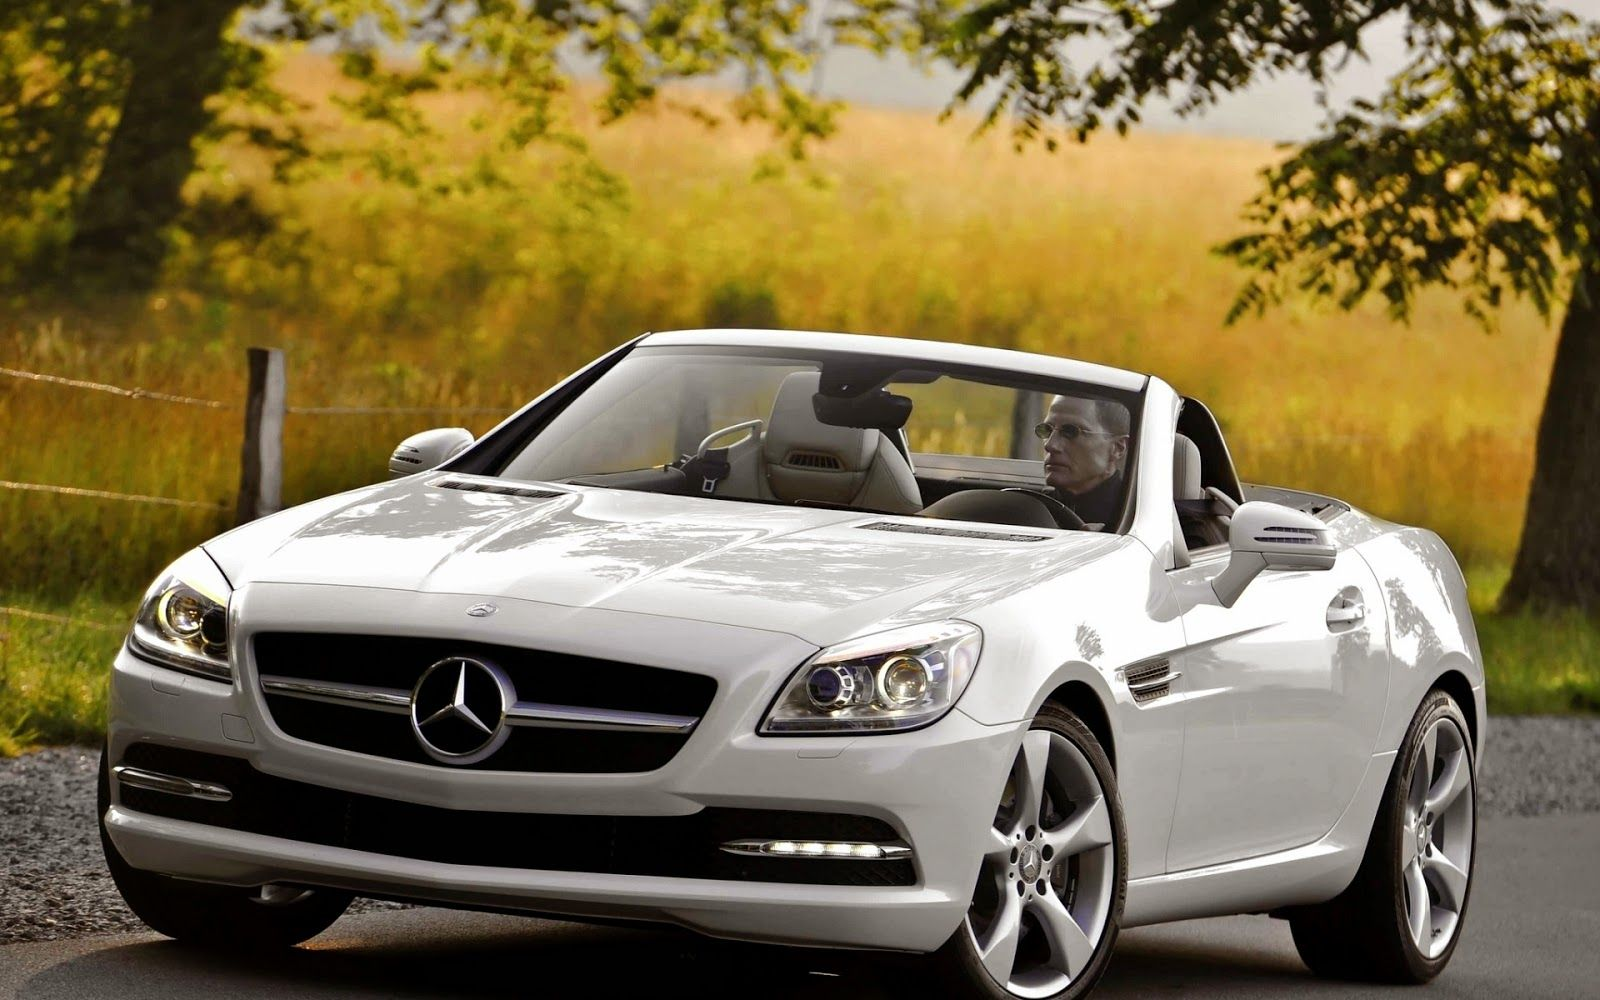 Cool Mercedes Logo Wallpaper Iphone Car Images Hd Roundup 40